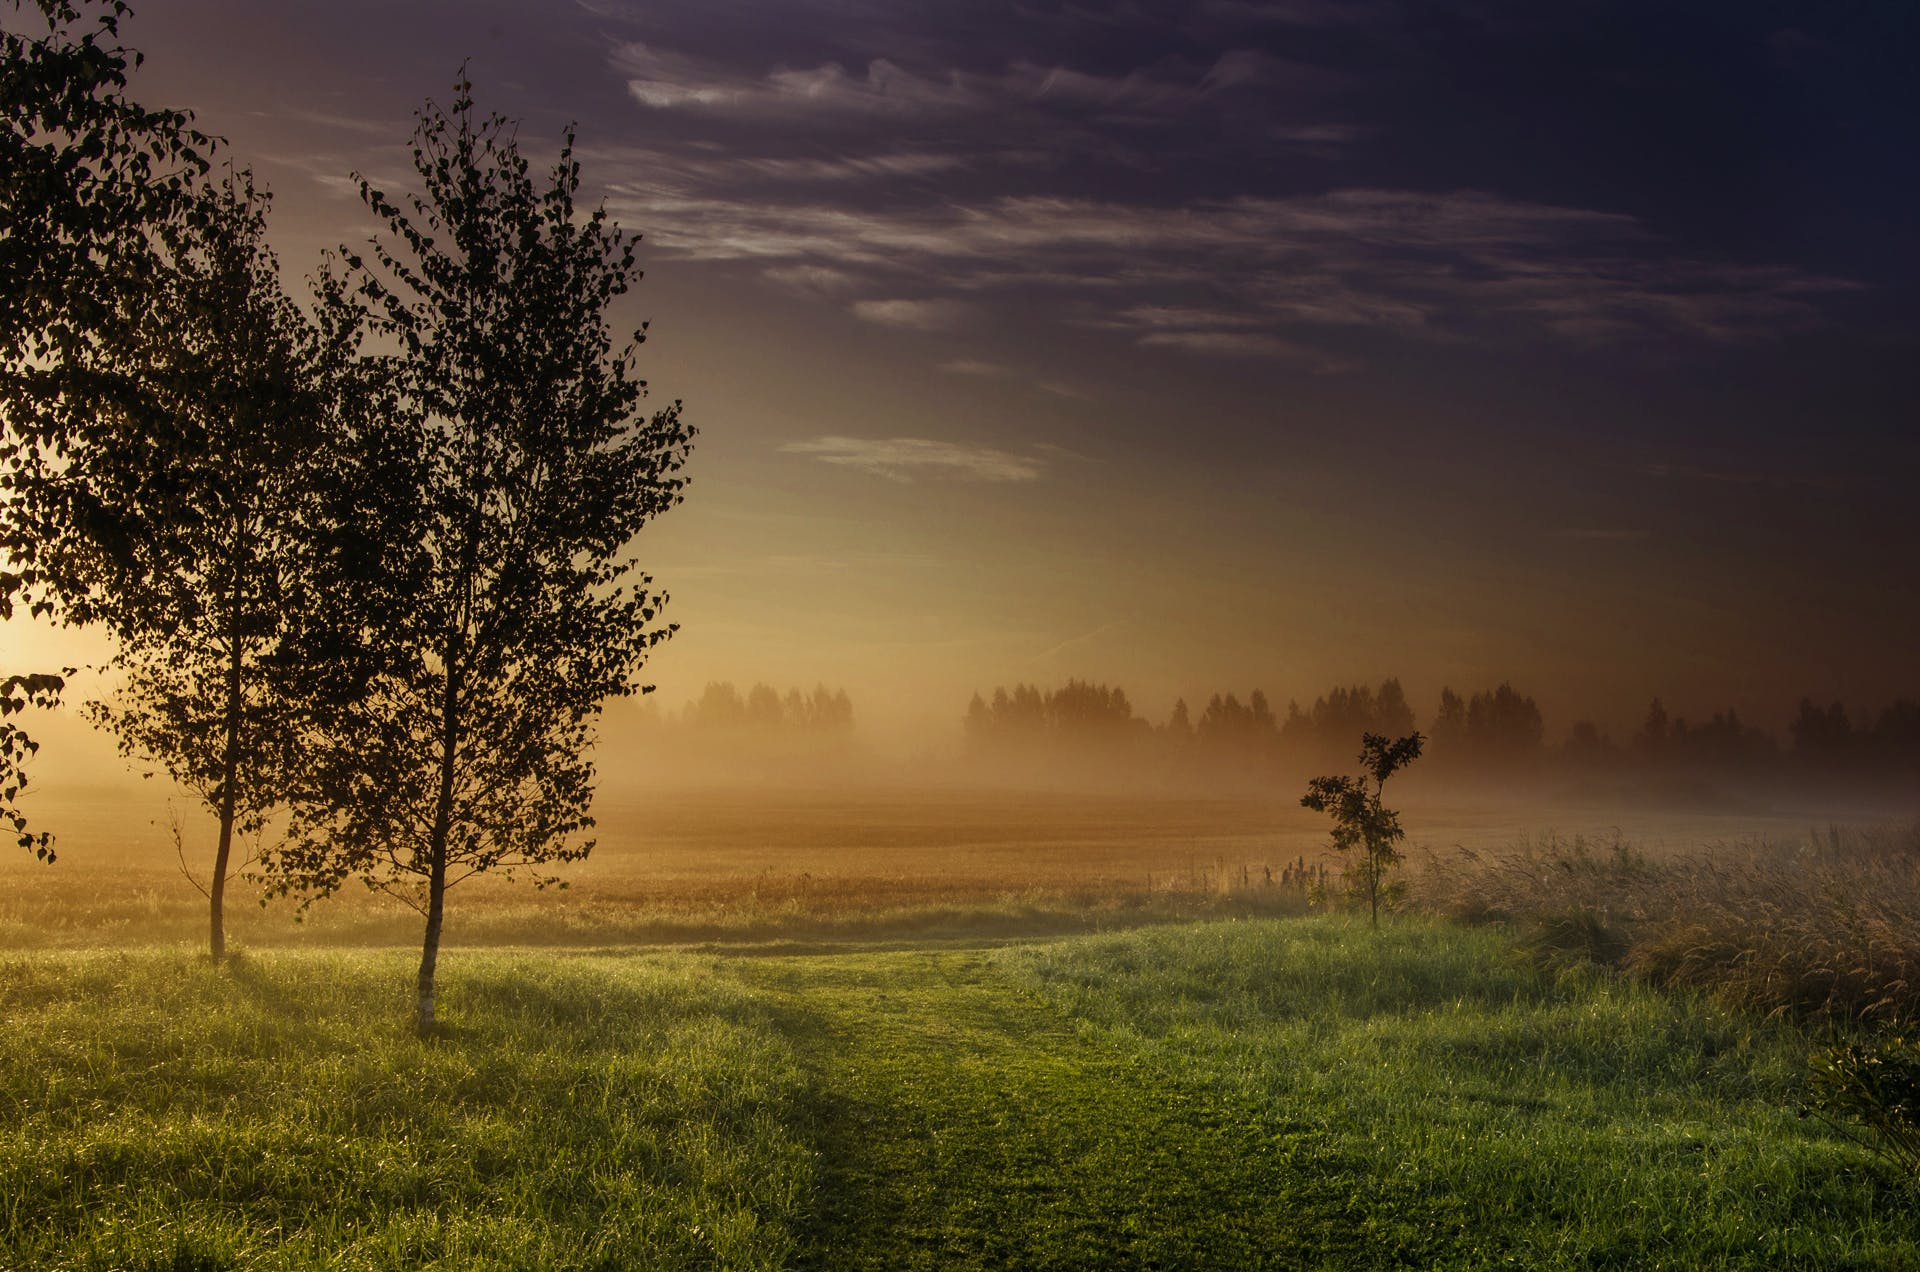 Landscape Photography Green Grass-field Beside Dark Foggy Forest during Golden Hour